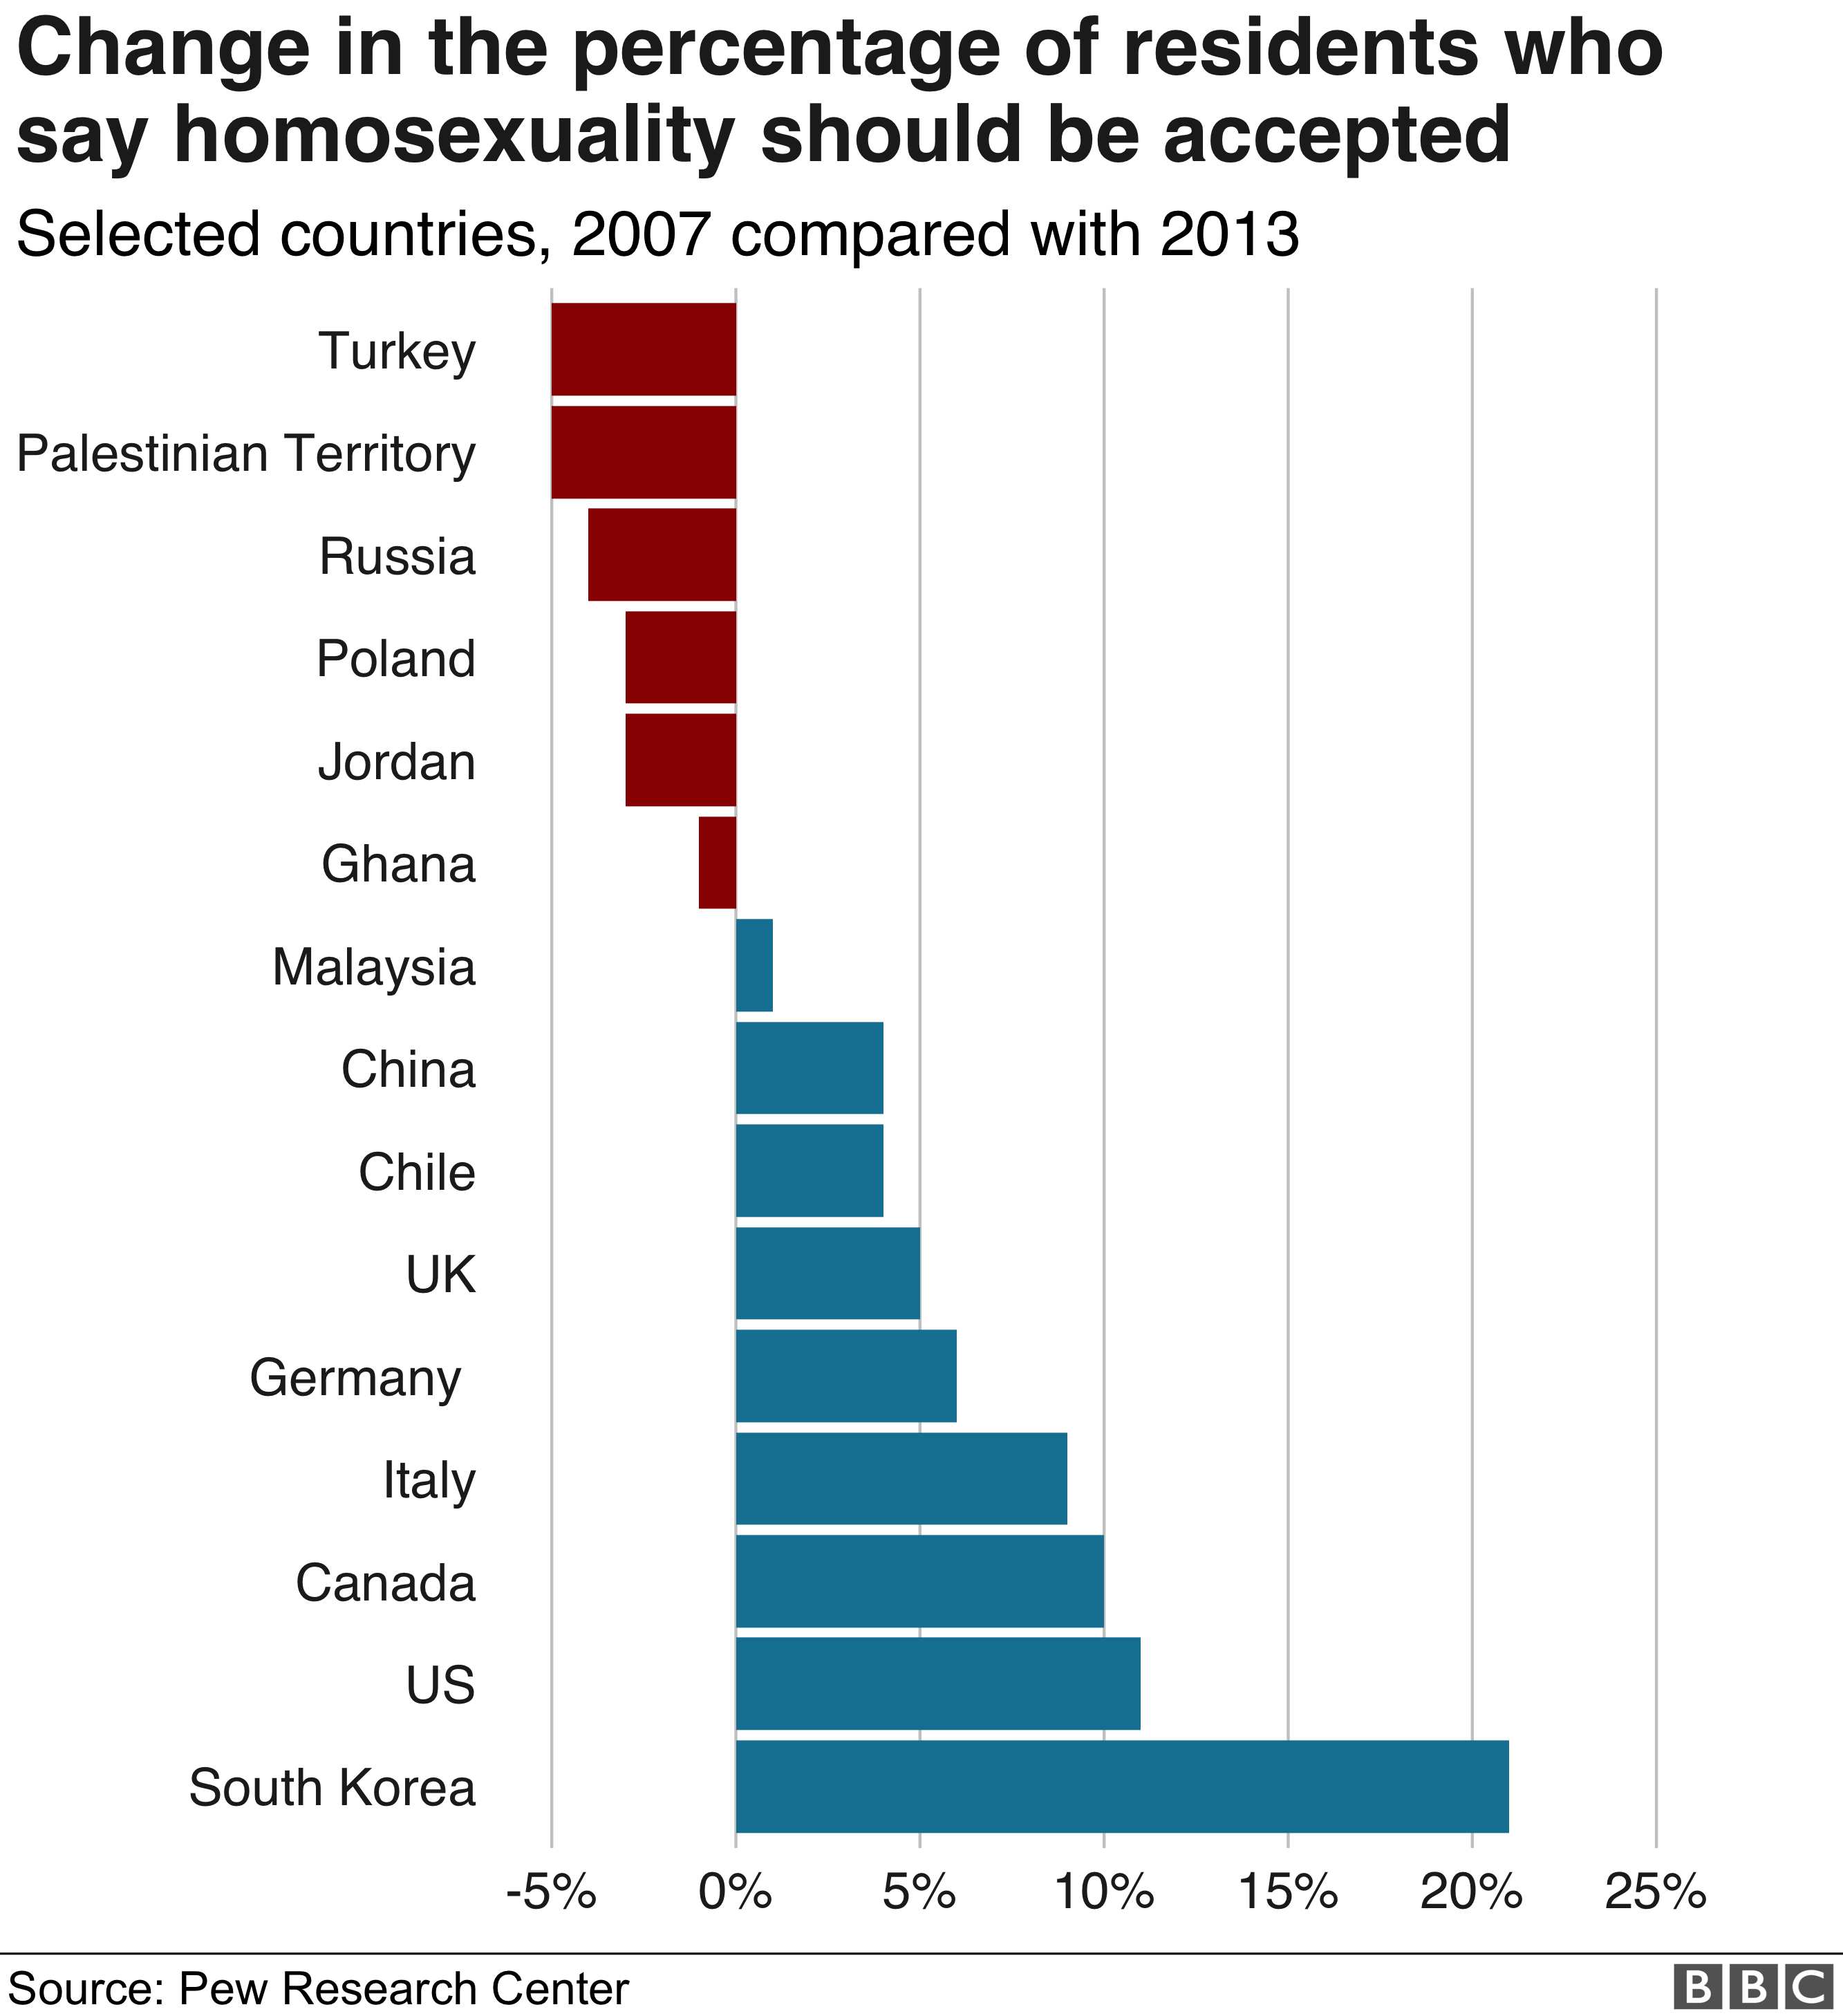 Chart showing change in proportion of residents who say homosexuality should be accepted